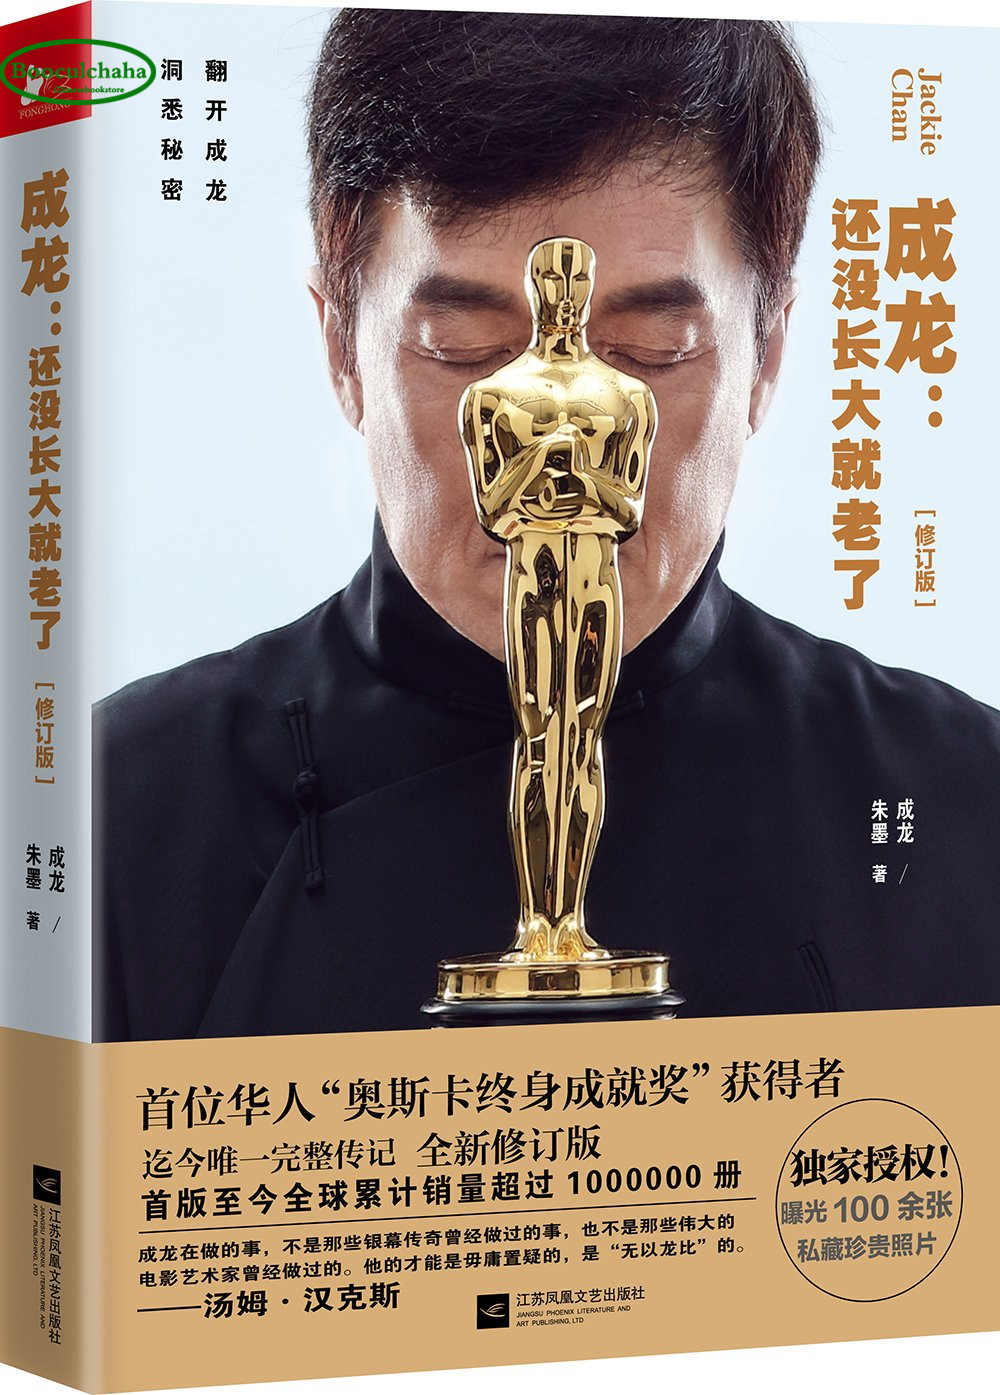 Jackie Chan biography books life story book : I am old